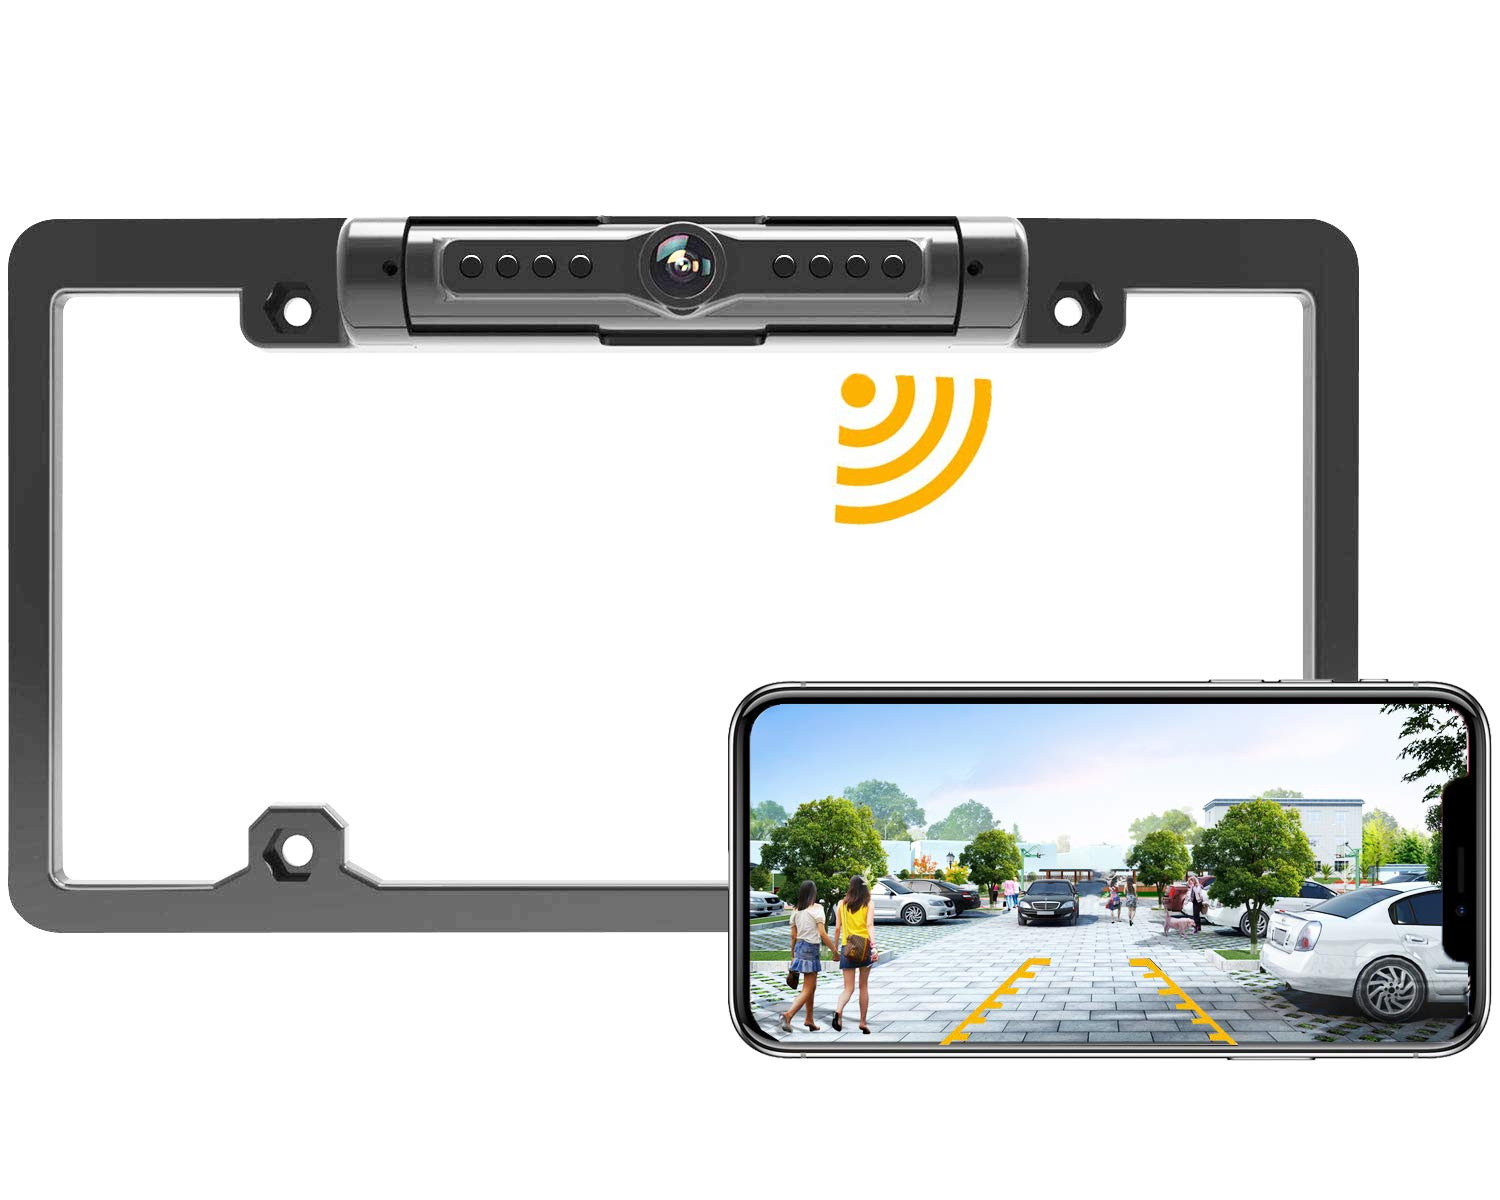 License Plate Wireless Backup Camera, WiFi Rear View Camera, LASTBUS 170° View Angle Universal IP69 Waterproof Car License Plate Frame Camera for Cars RV Box Truck SUV Pick Up Truck Van by LASTBUS